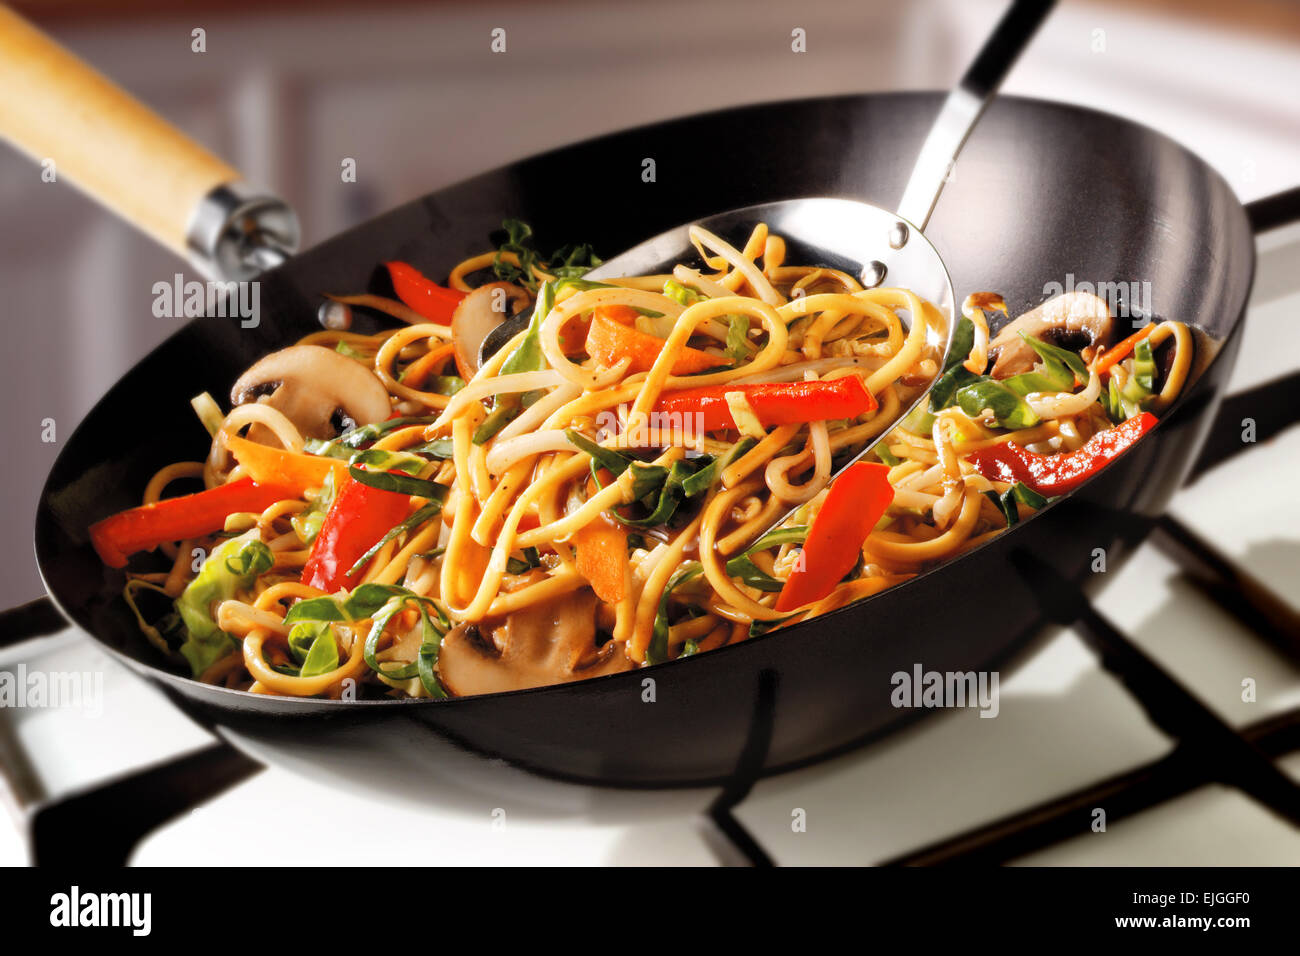 Stir Fry Noodles, peppers, mushrooms & carrots being cooked - Stock Image